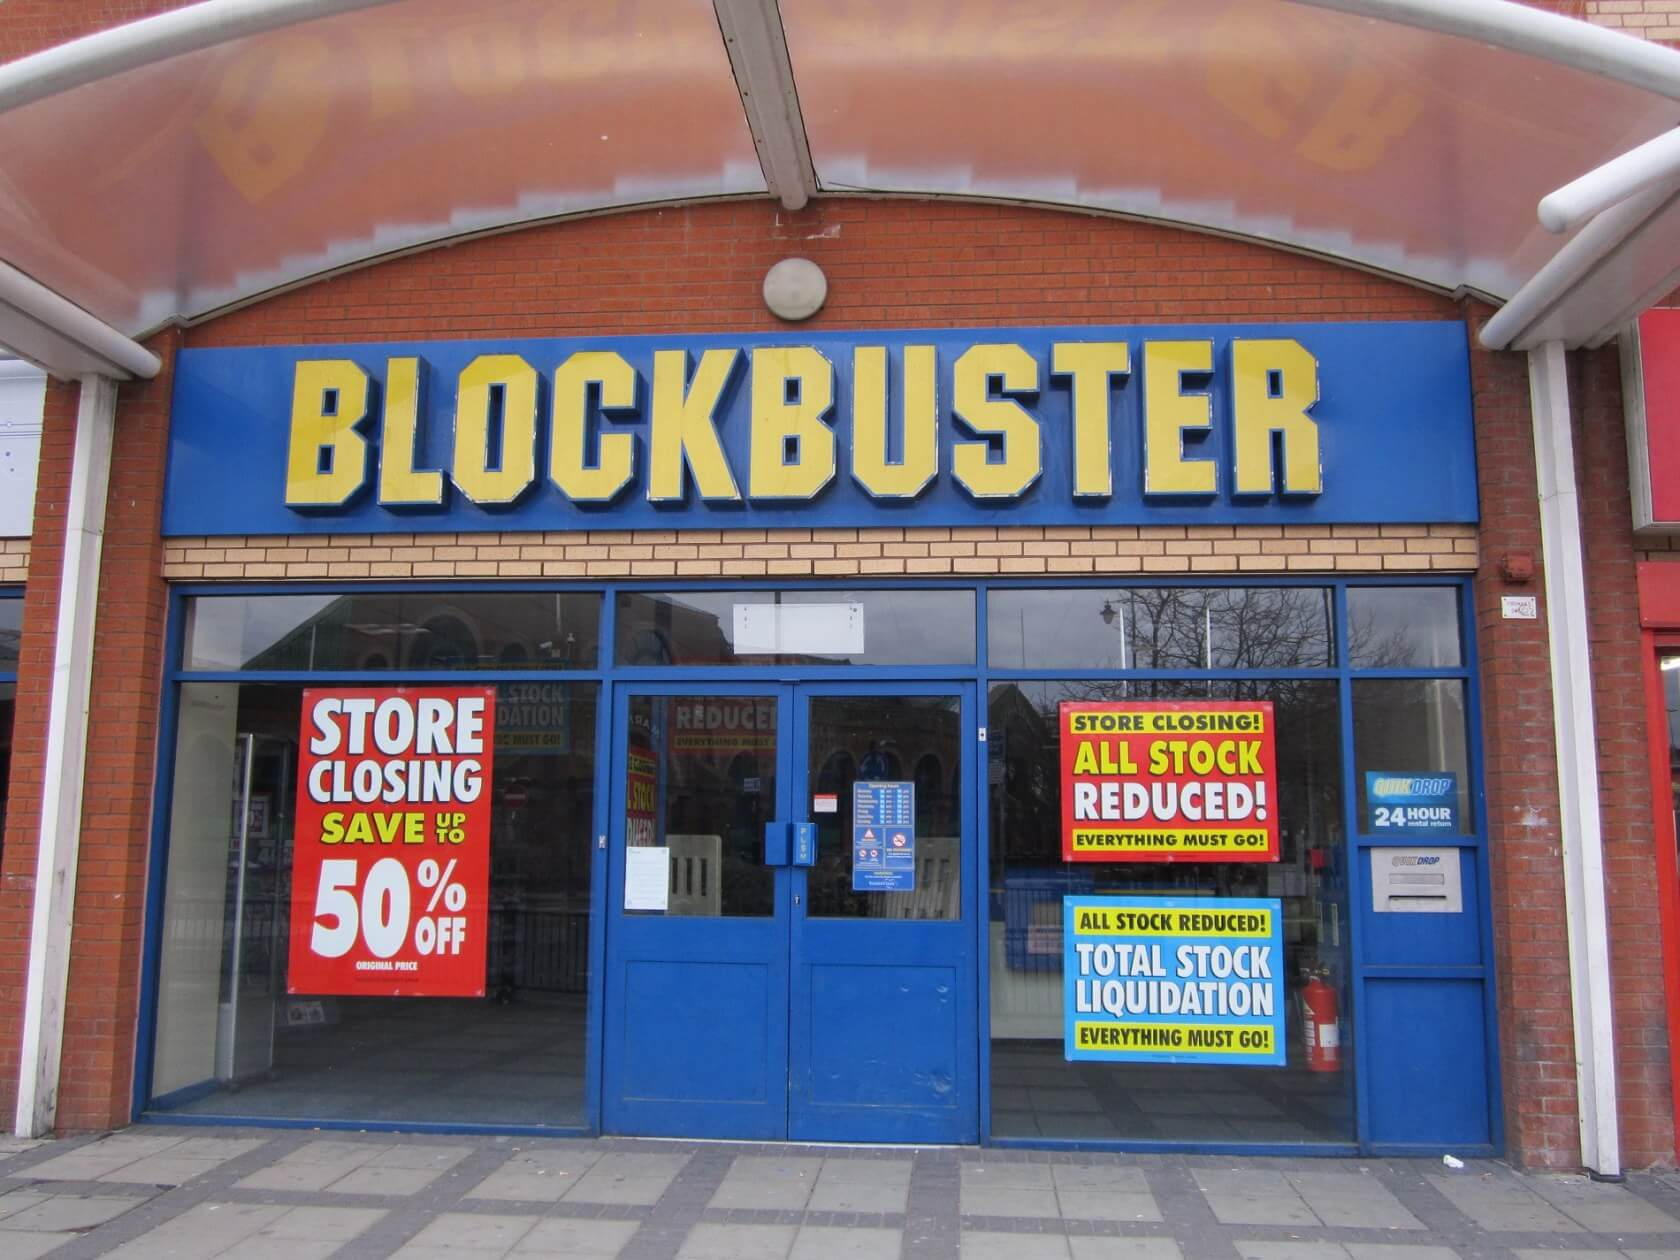 Guess what? There's only one Blockbuster store left now